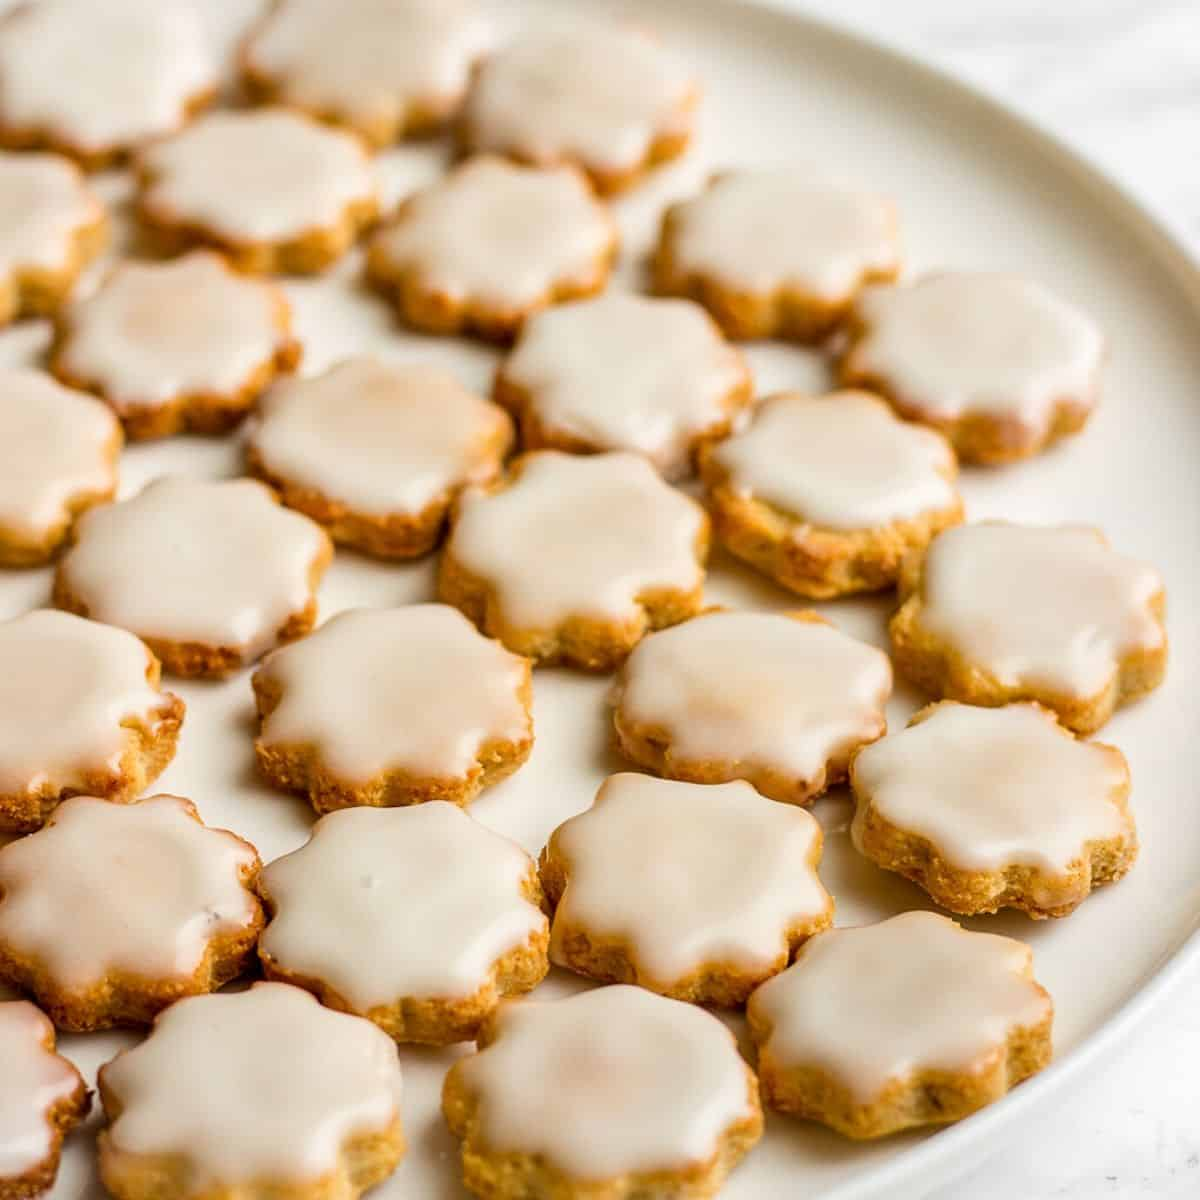 gluten-free almond banana cookies on a plate